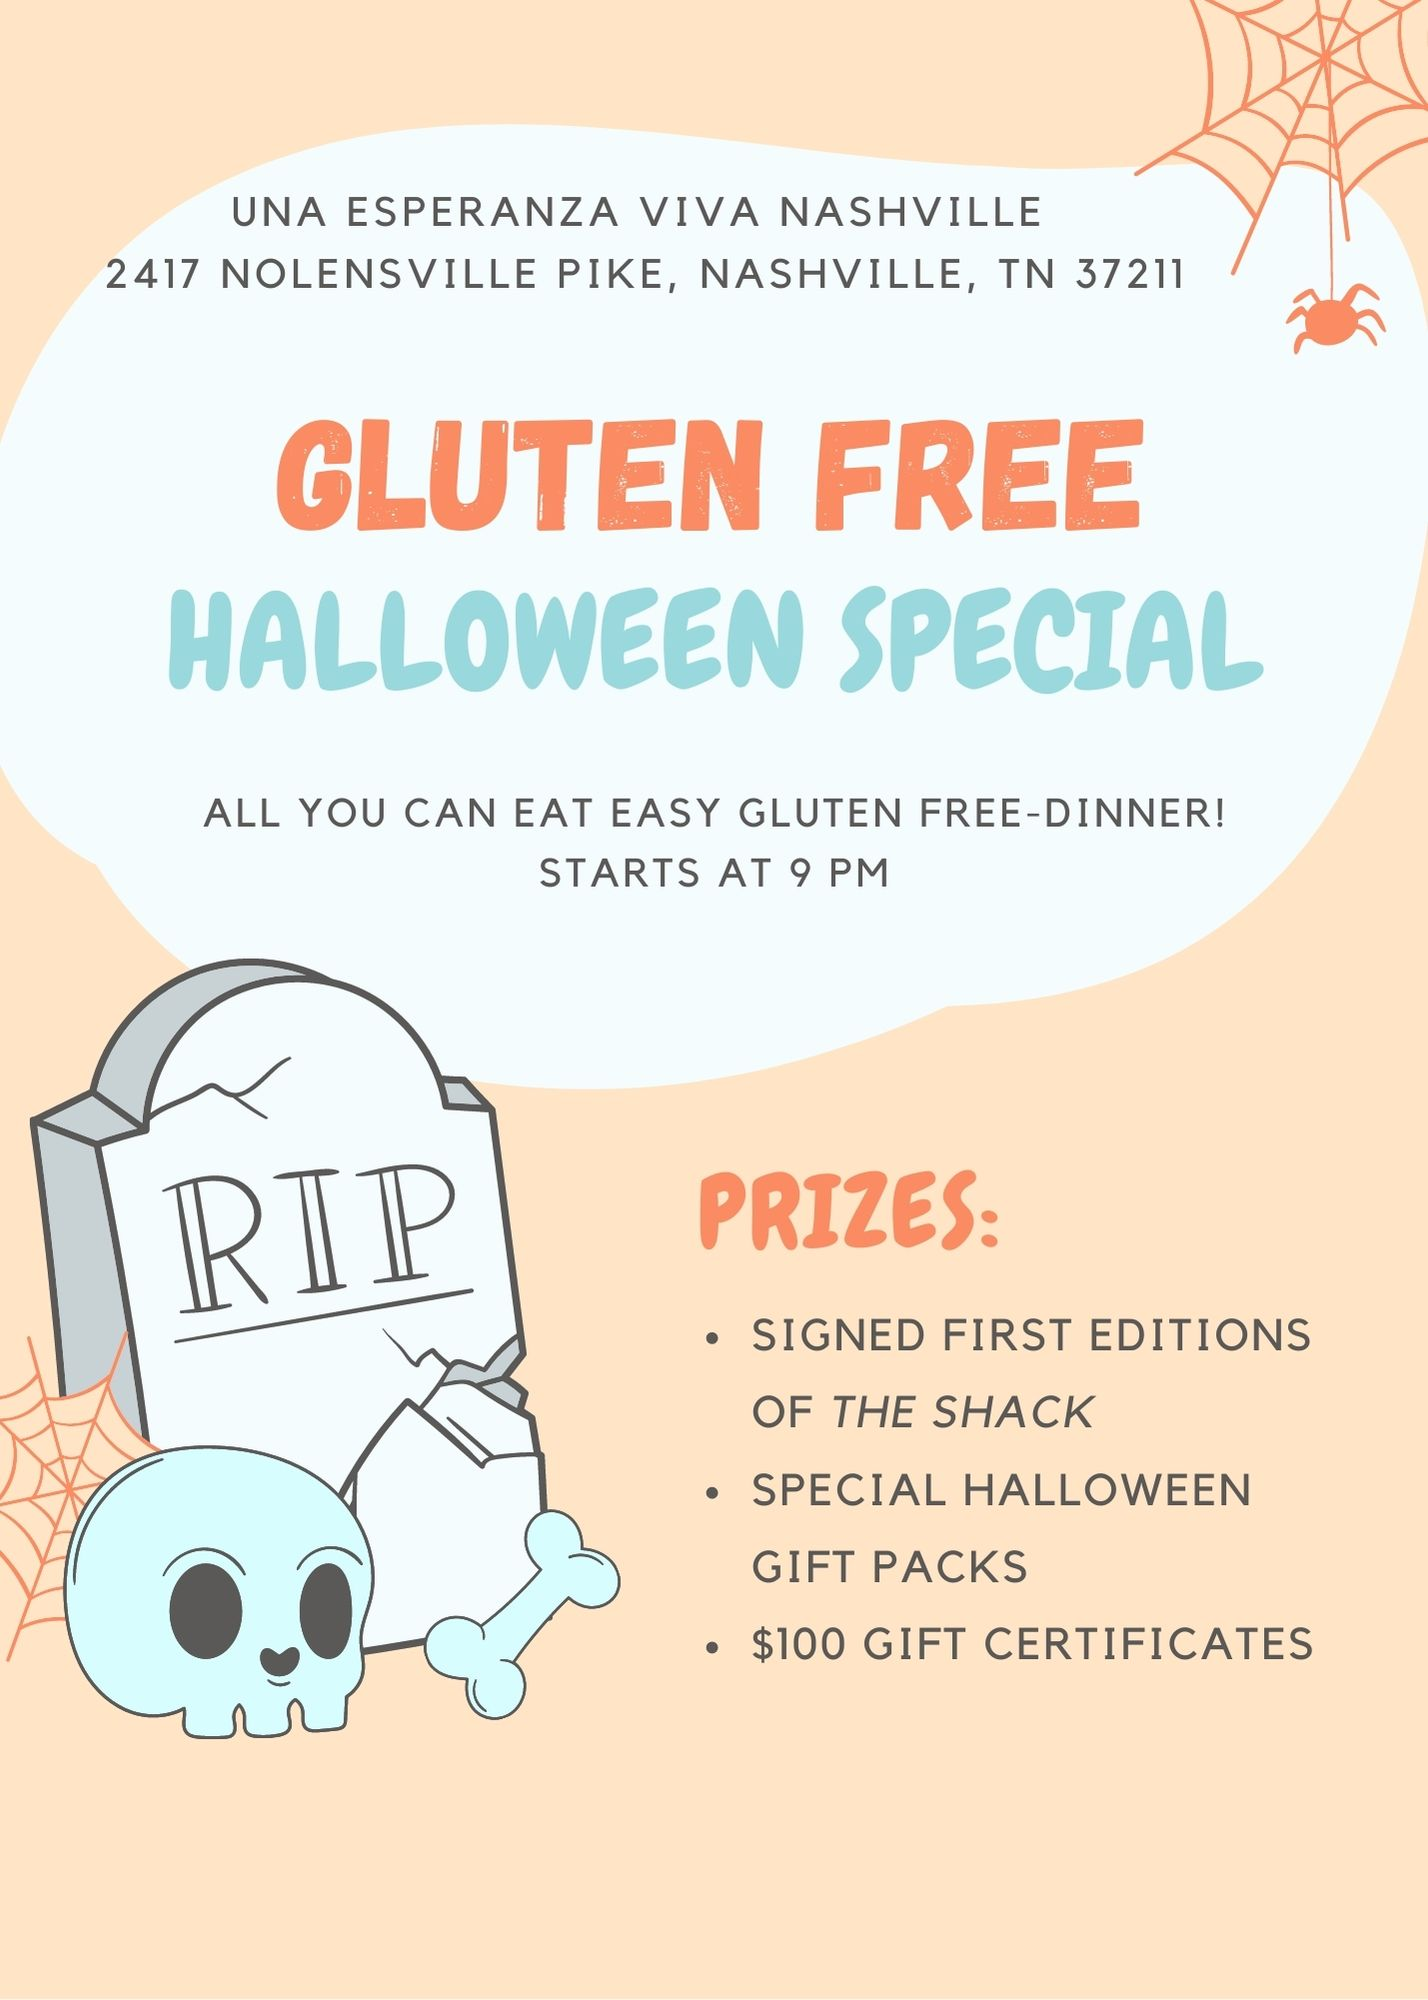 ALL YOU CAN EAT EASY GLUTEN FREE DINNER!